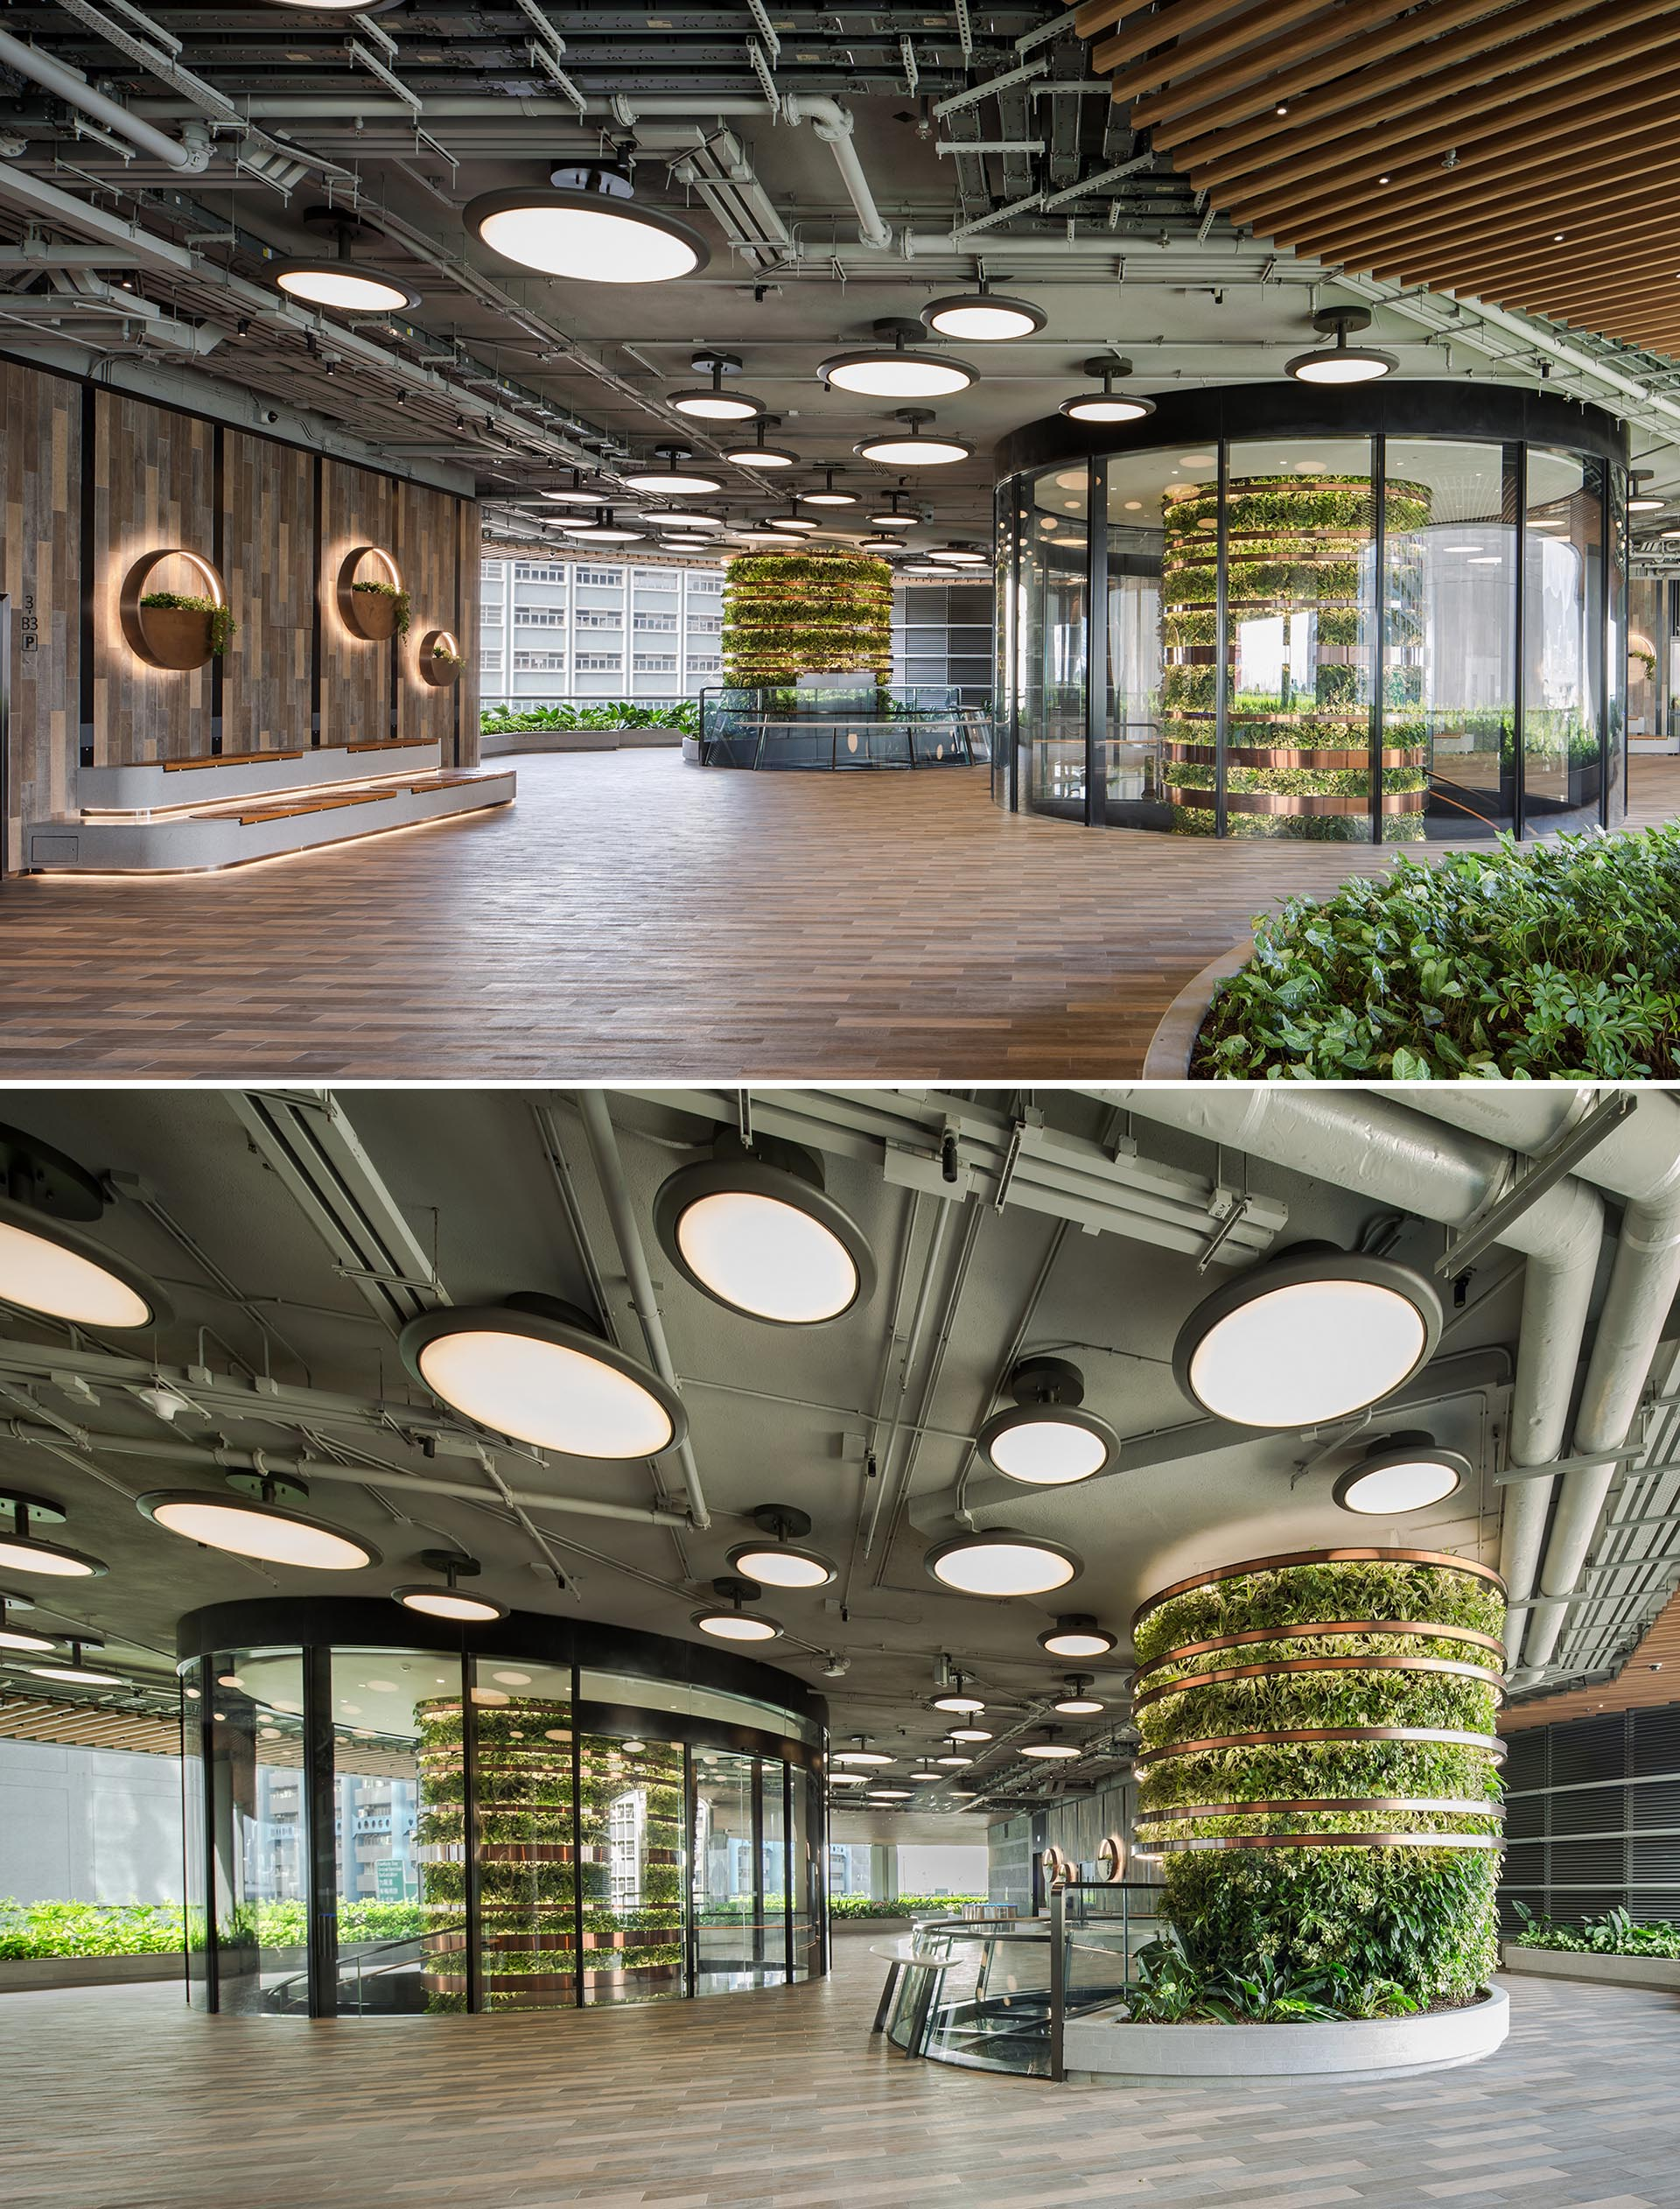 Vertical gardens in the shape of columns traverse multiple floors of an office building.